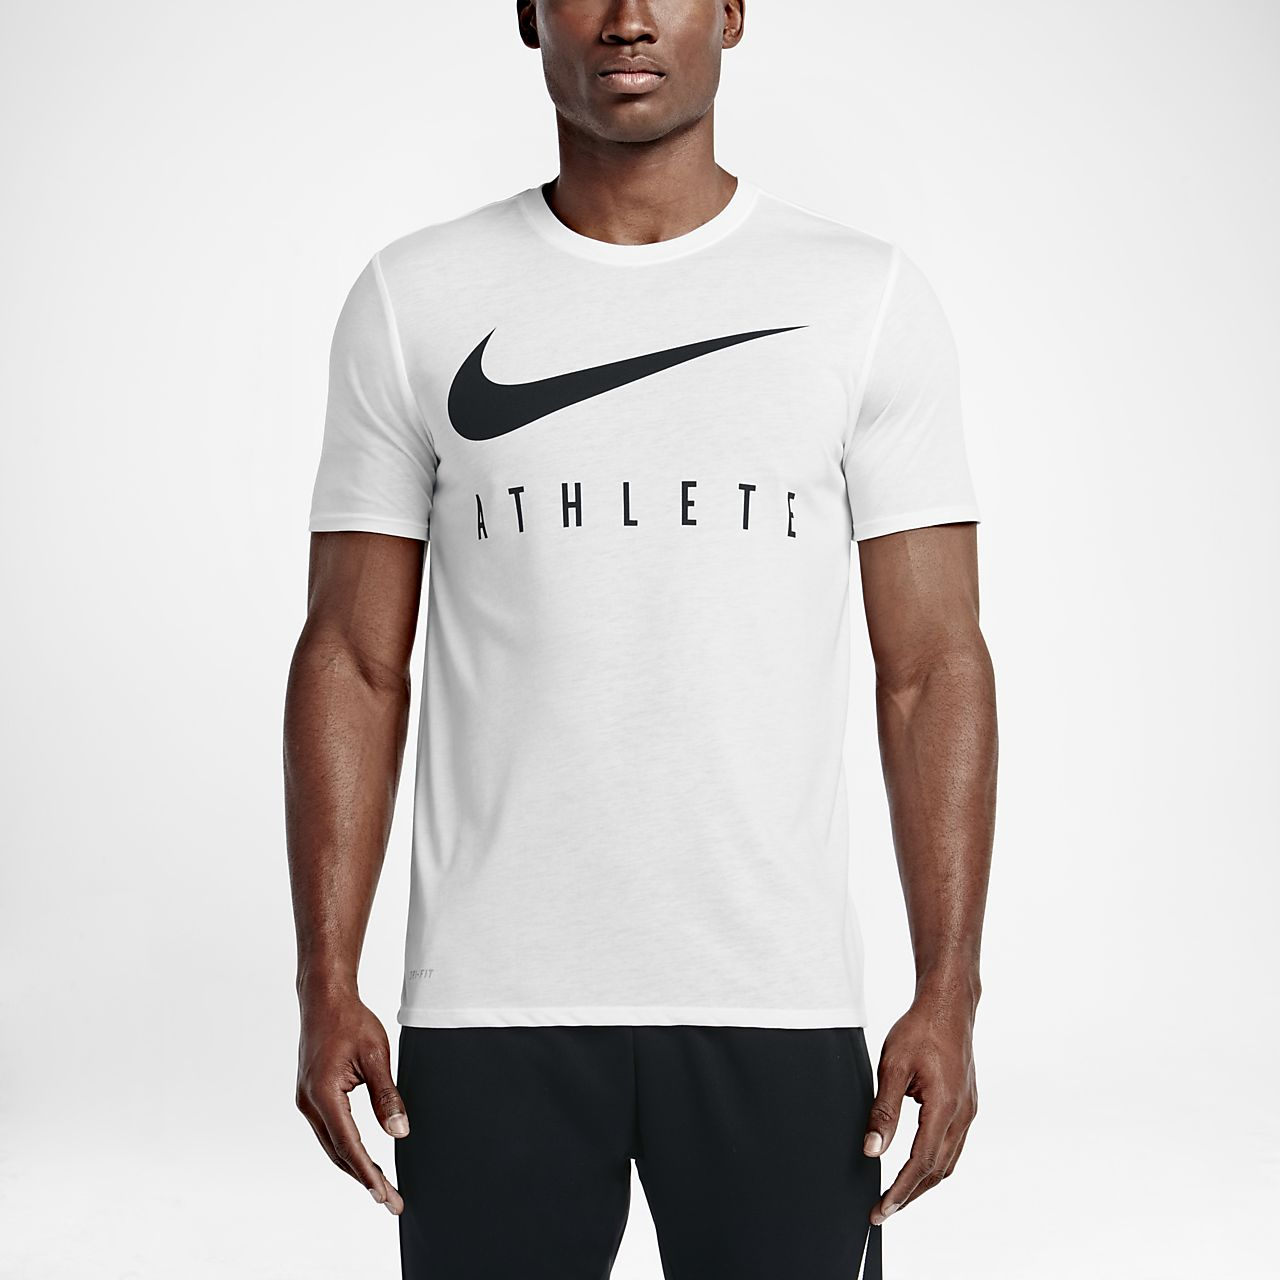 Nike Swoosh Athlete Photo BlauPhoto BlauSchwarz  TShirt